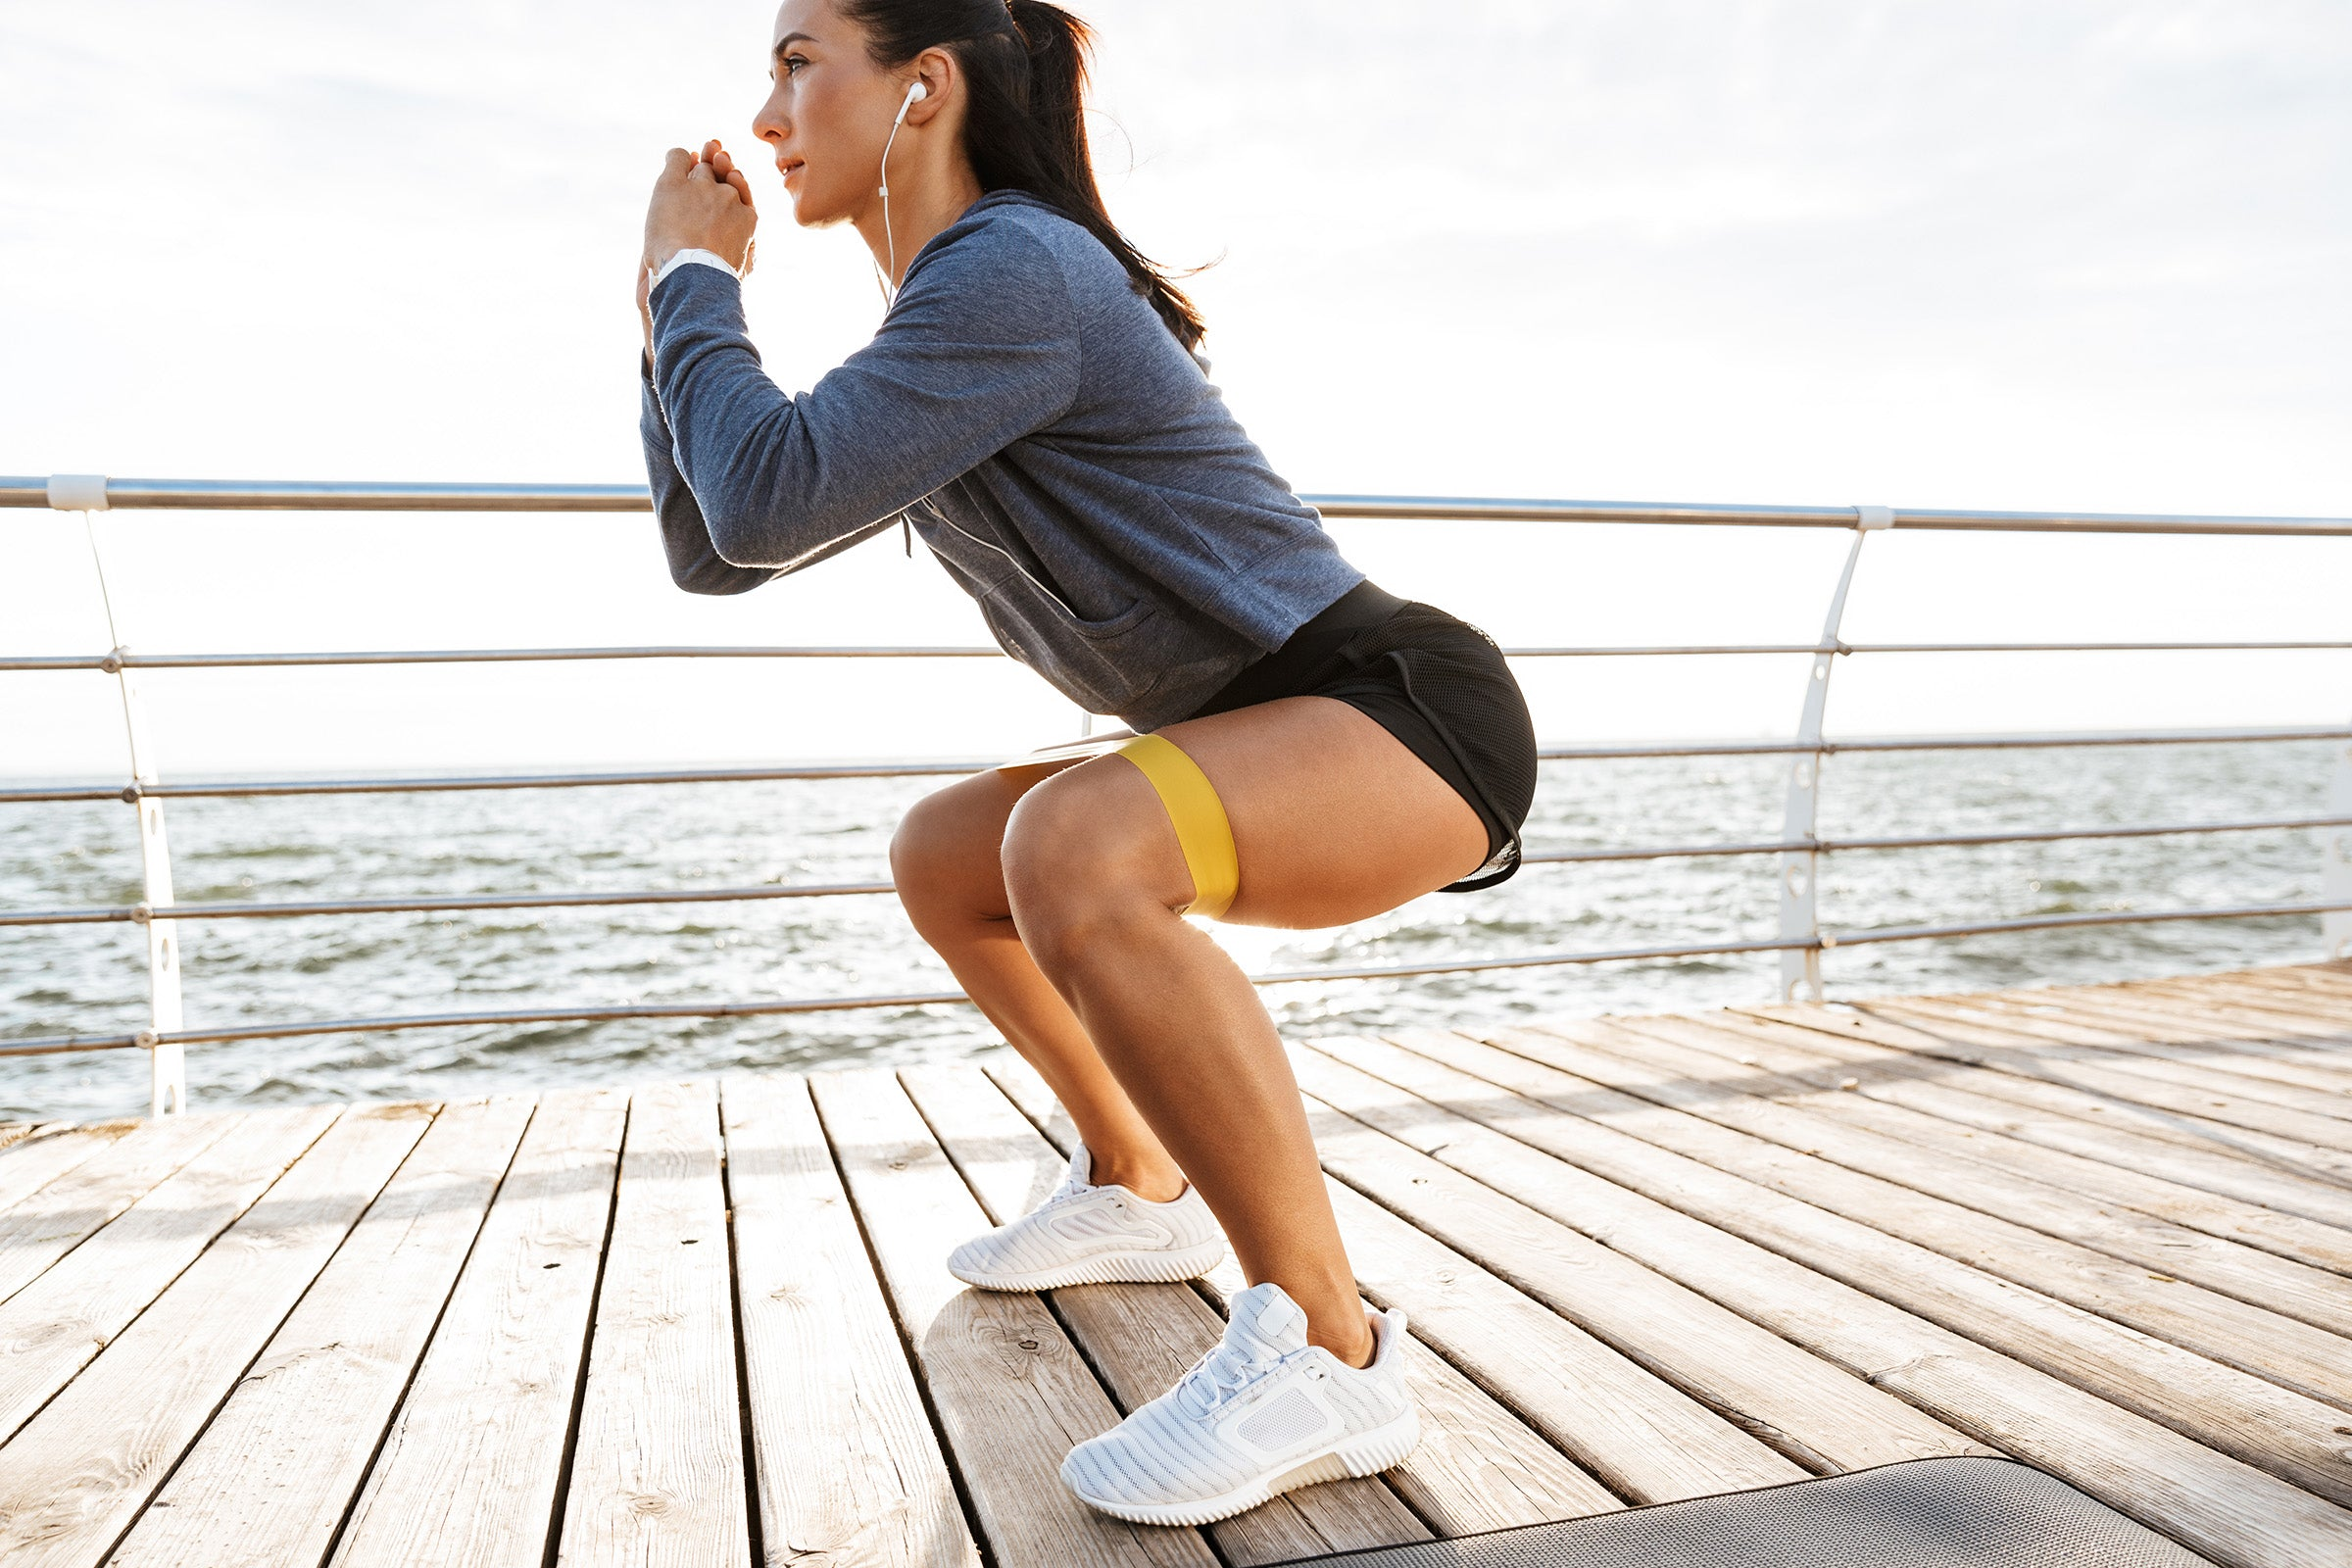 Despite knowing it's good for them, many people fail to take part in any form of exercise regularly.